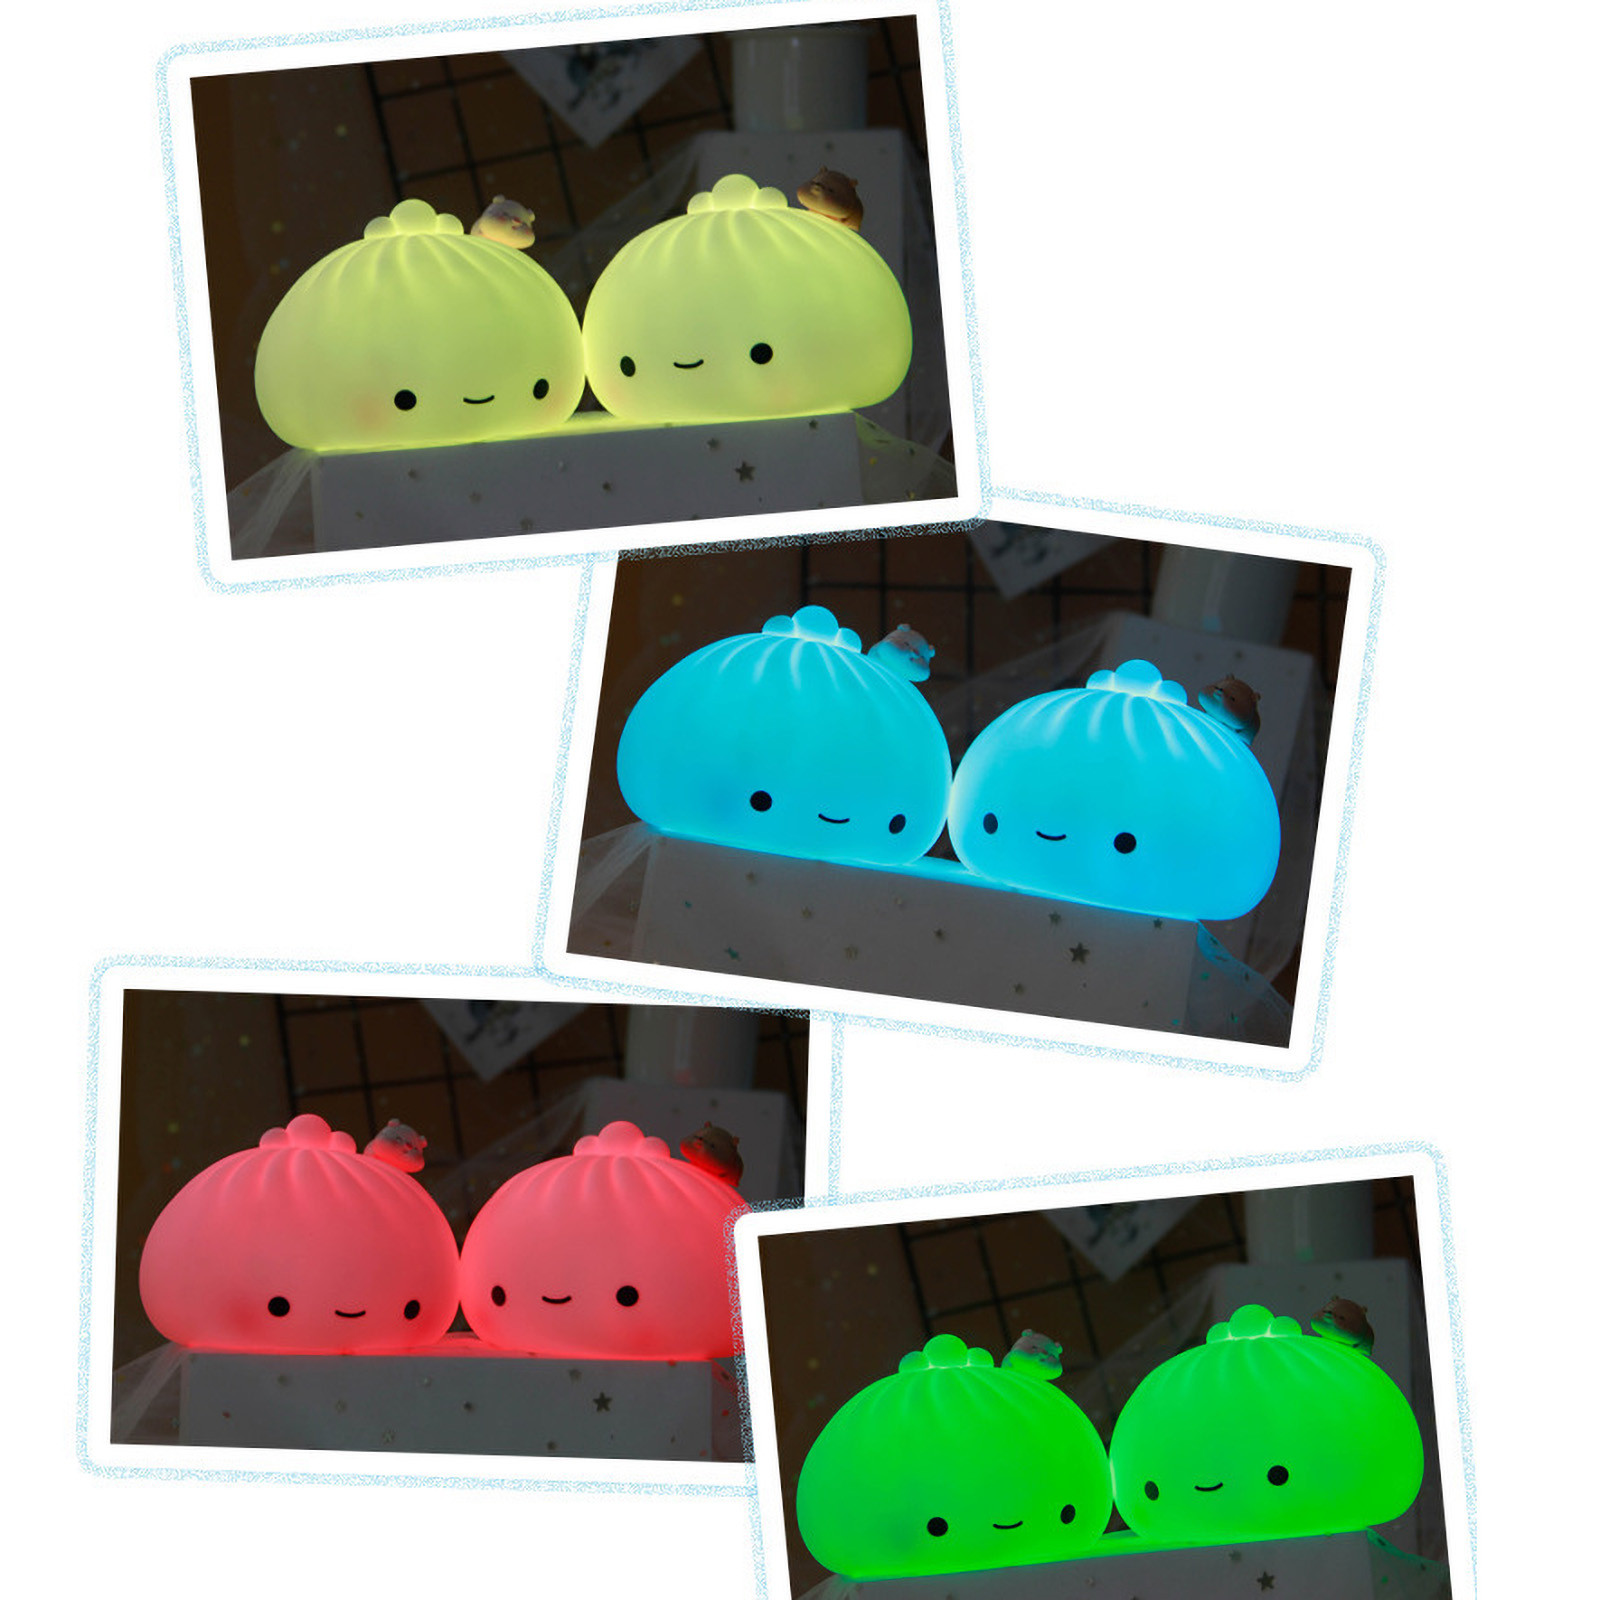 Lamp Fidget-Toy Glue-Stress Reliever Colorful Mini Baozi Desktop Soft Nightlight Festival img2